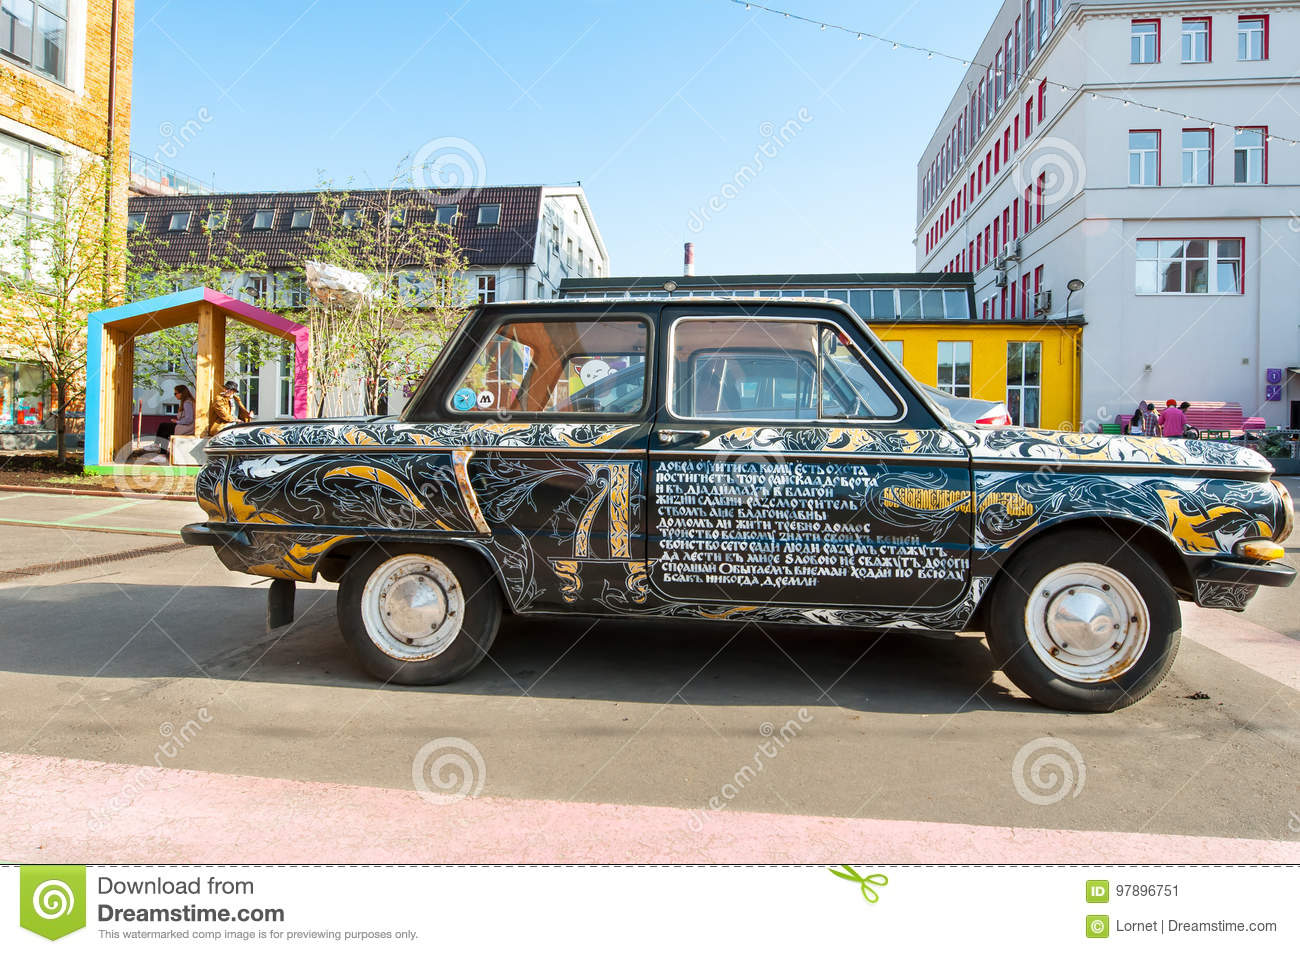 Retro car ZAZ or Zaporozhets on Flacon Design Factory on May 01, 2017 in Moscow, Russia.